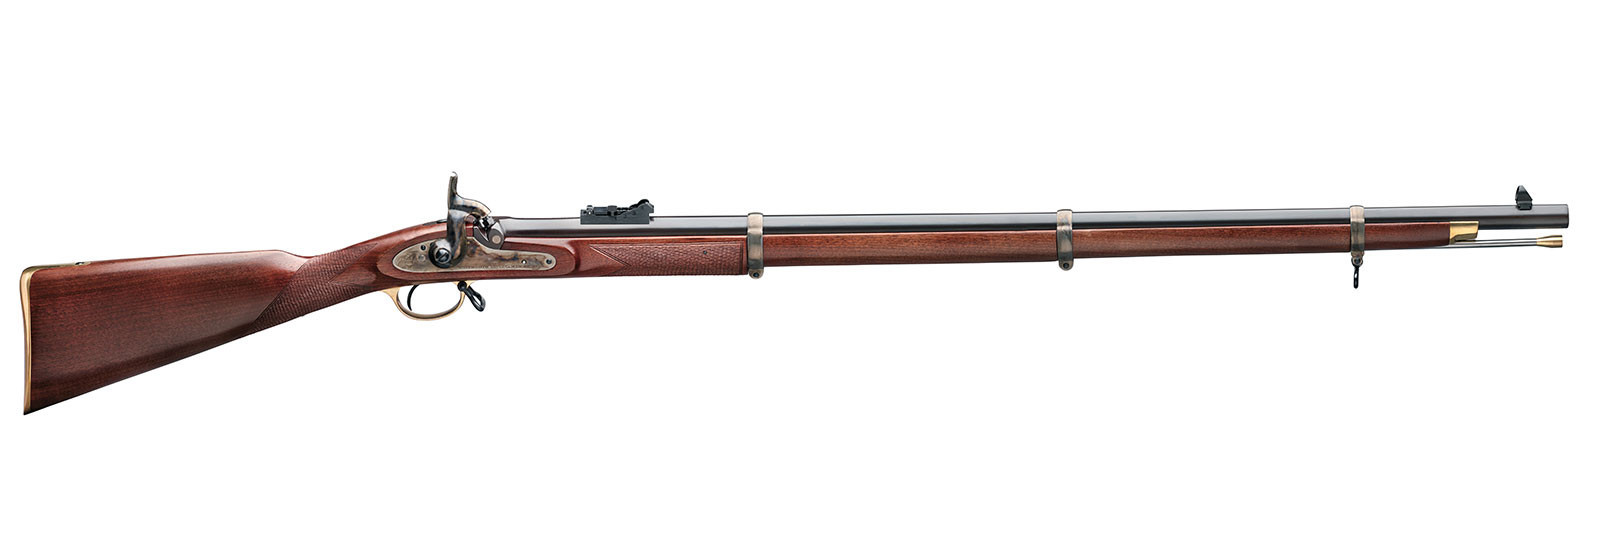 Fucile Whitworth Rifle